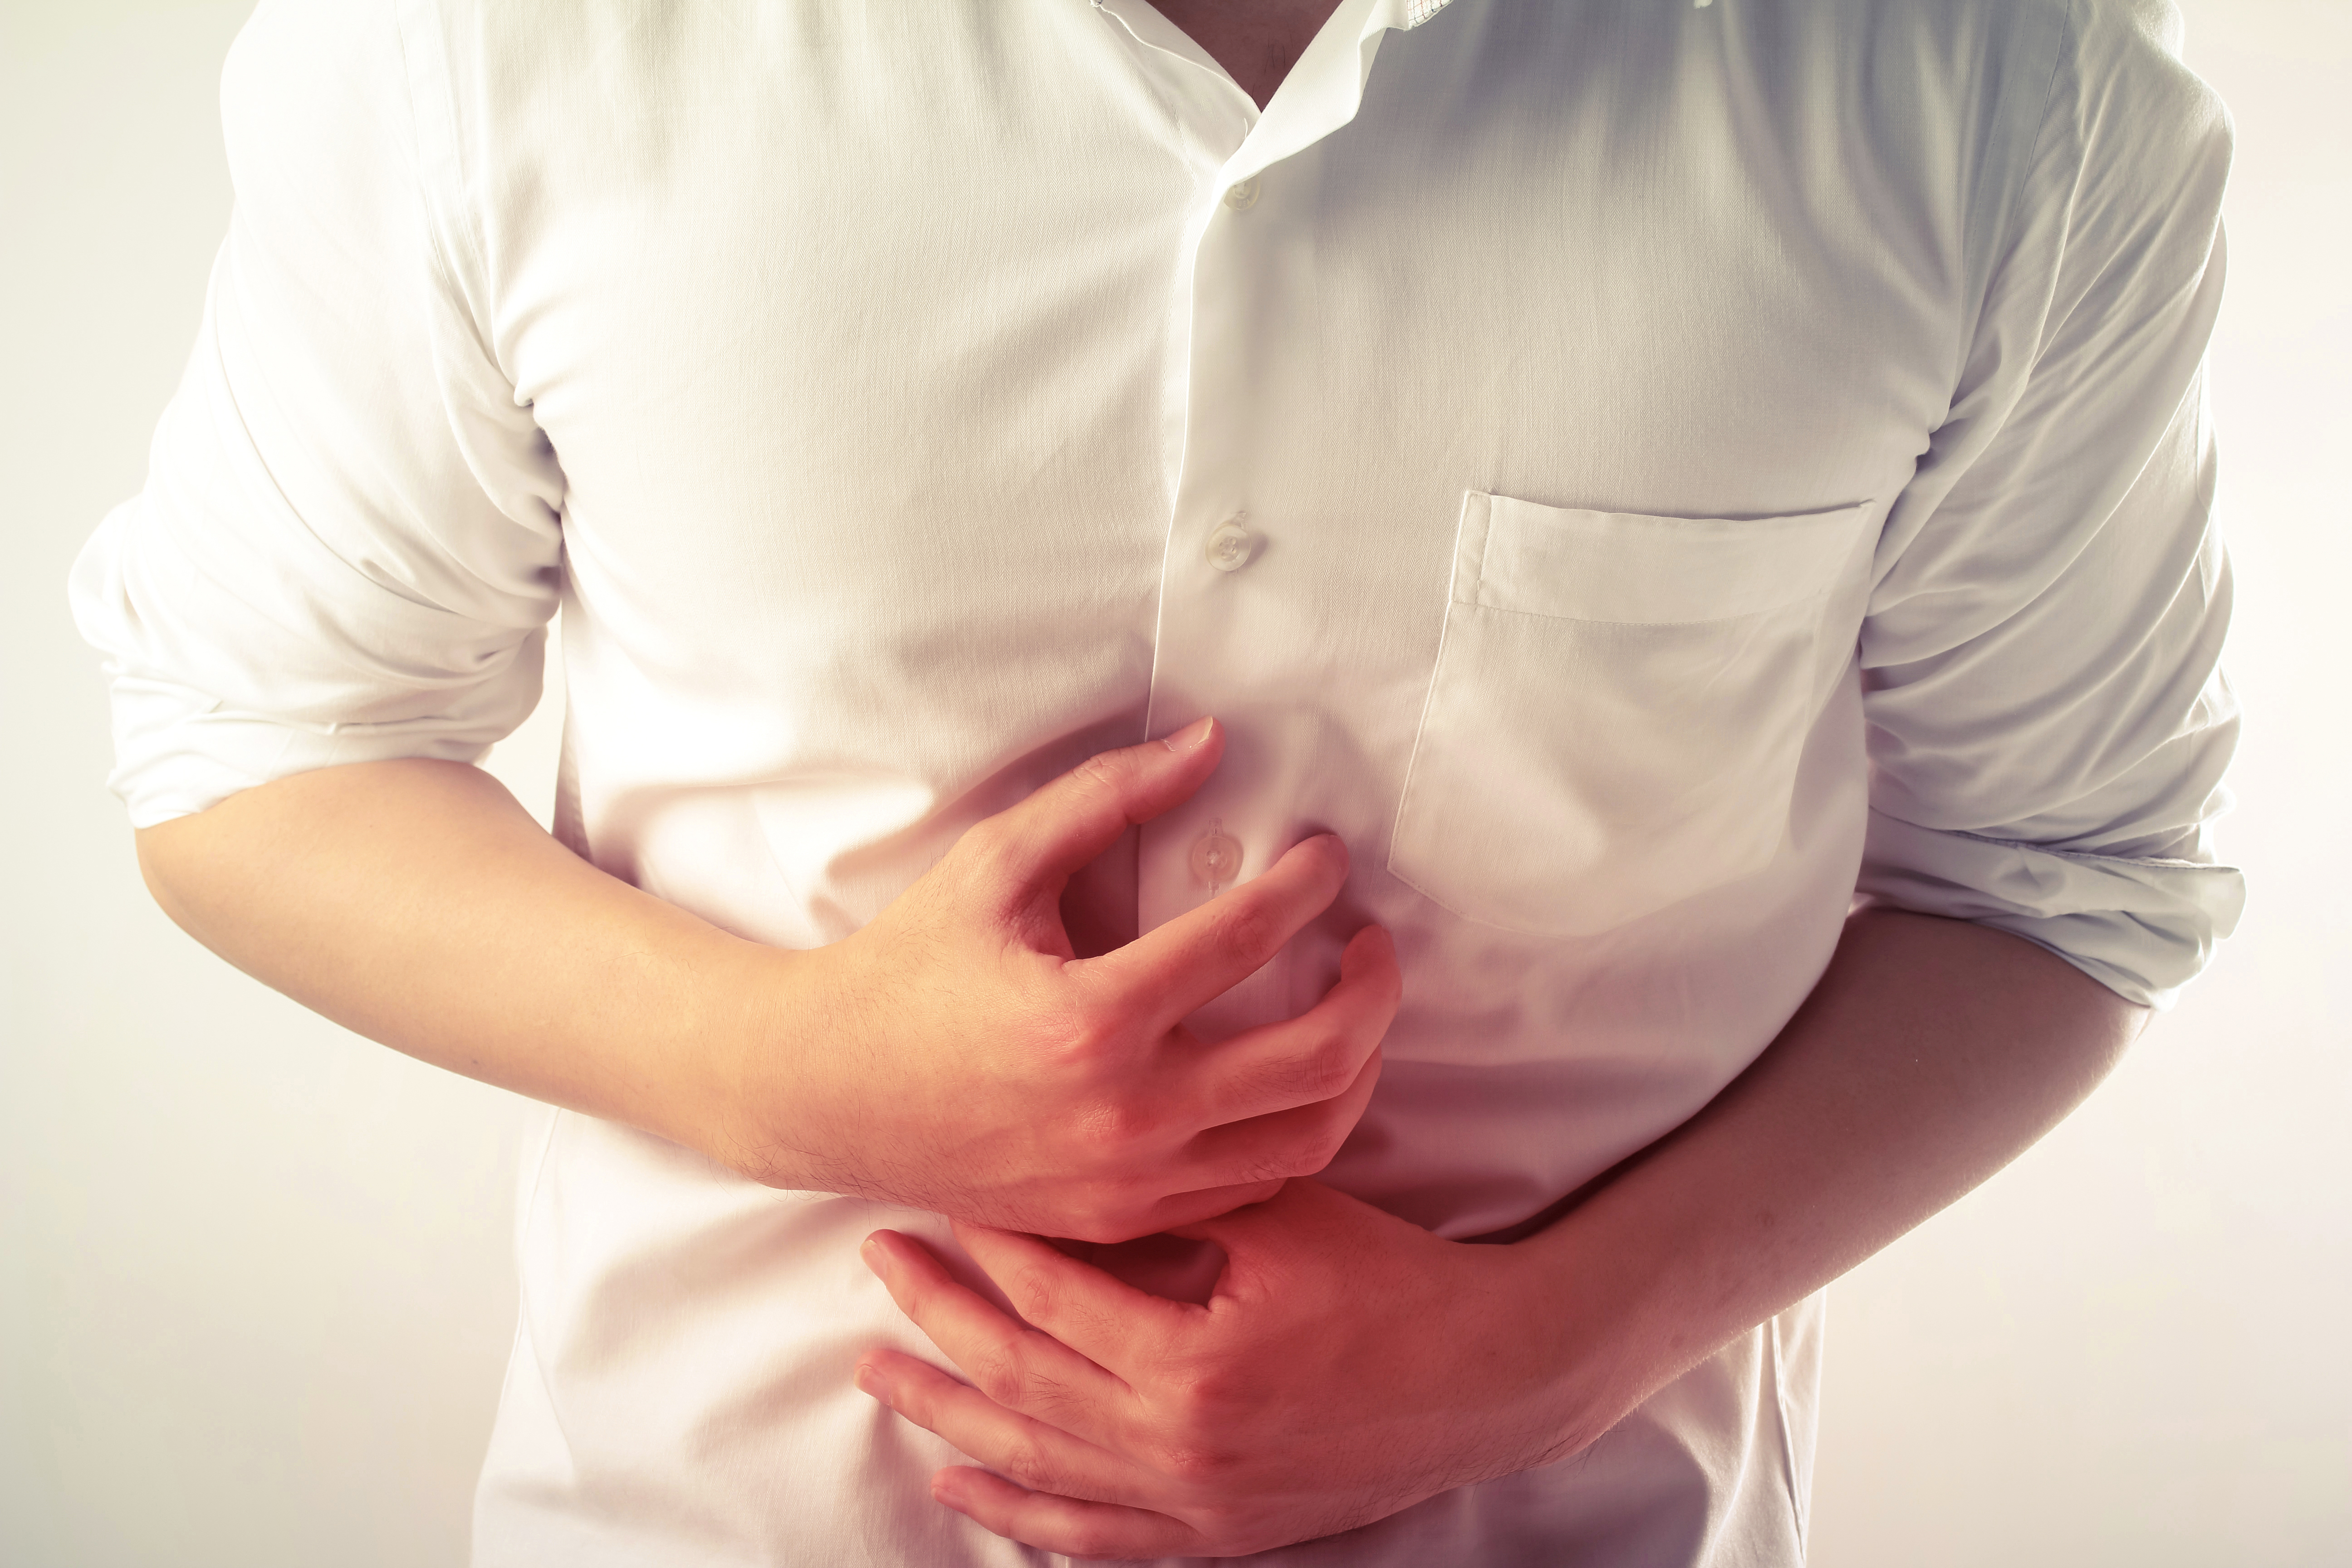 Oman Health: Keep track of your digestive tracts